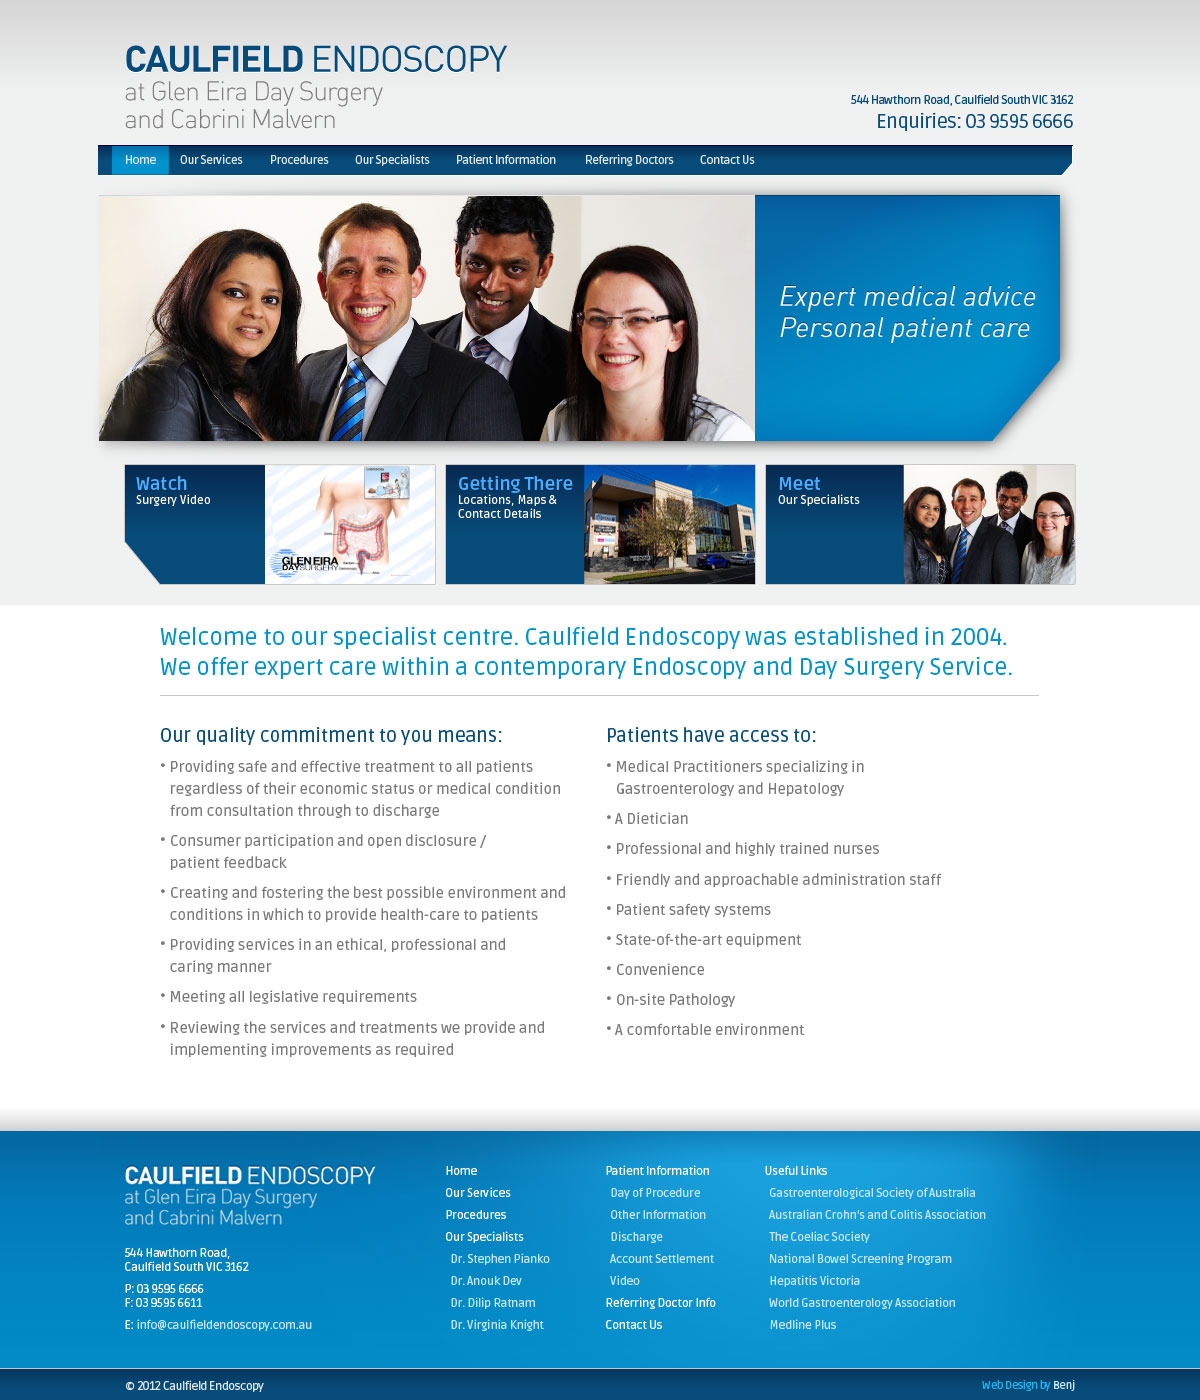 psd to wordpress Melbourne